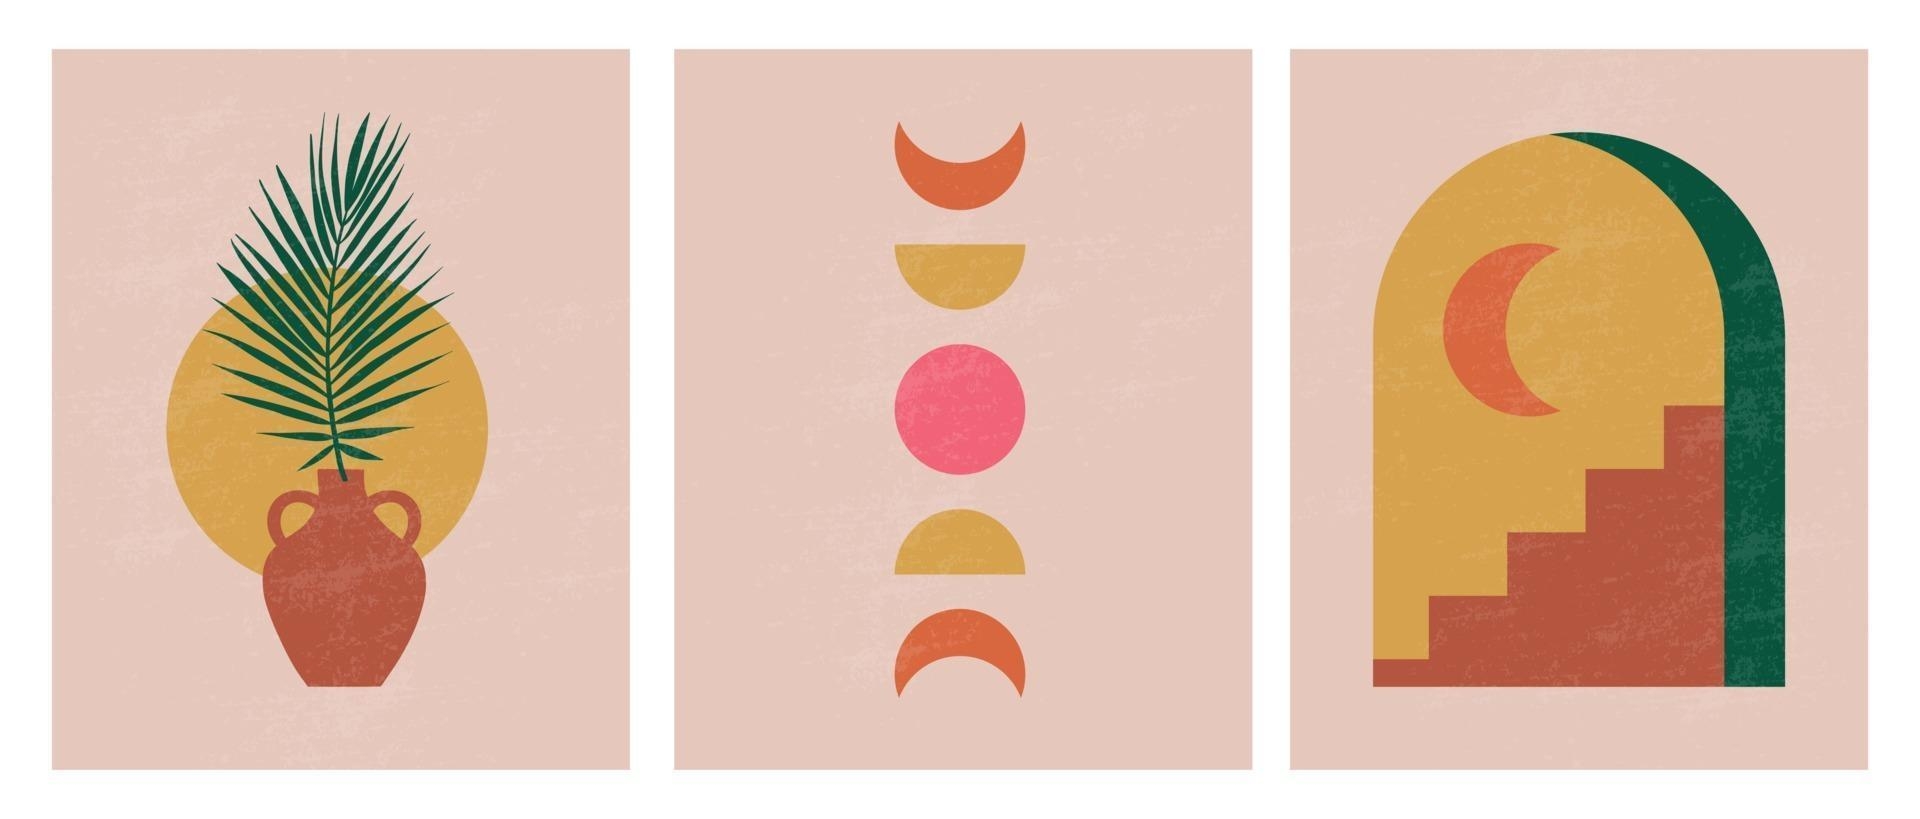 Modern minimalist abstract aesthetic illustrations. Bohemian style wall decor. Collection of contemporary artistic posters vector